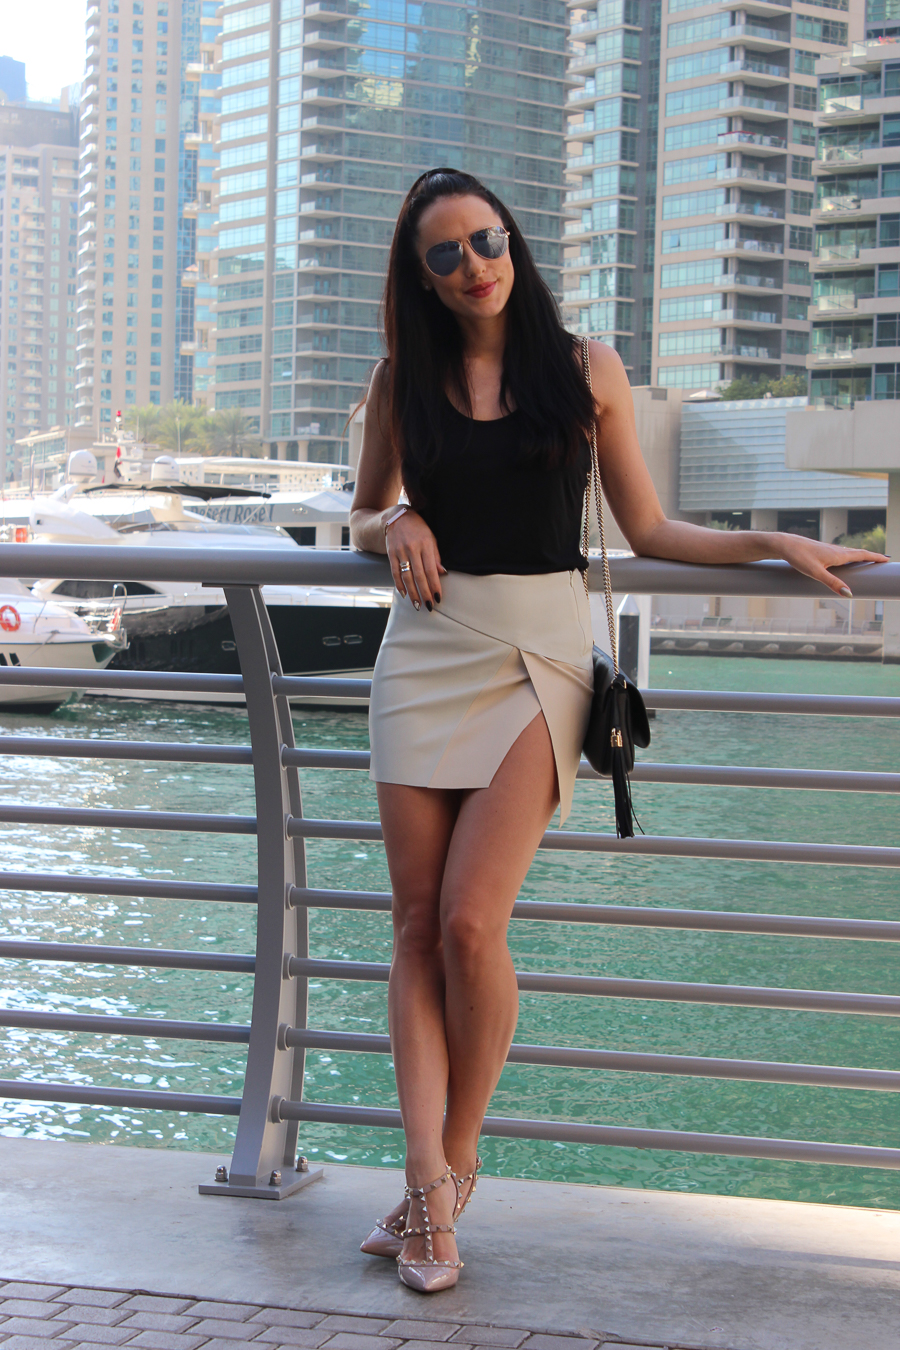 clutch and carry on - uk travel blogger - dubai travel blog - sabrina chakici -_-100